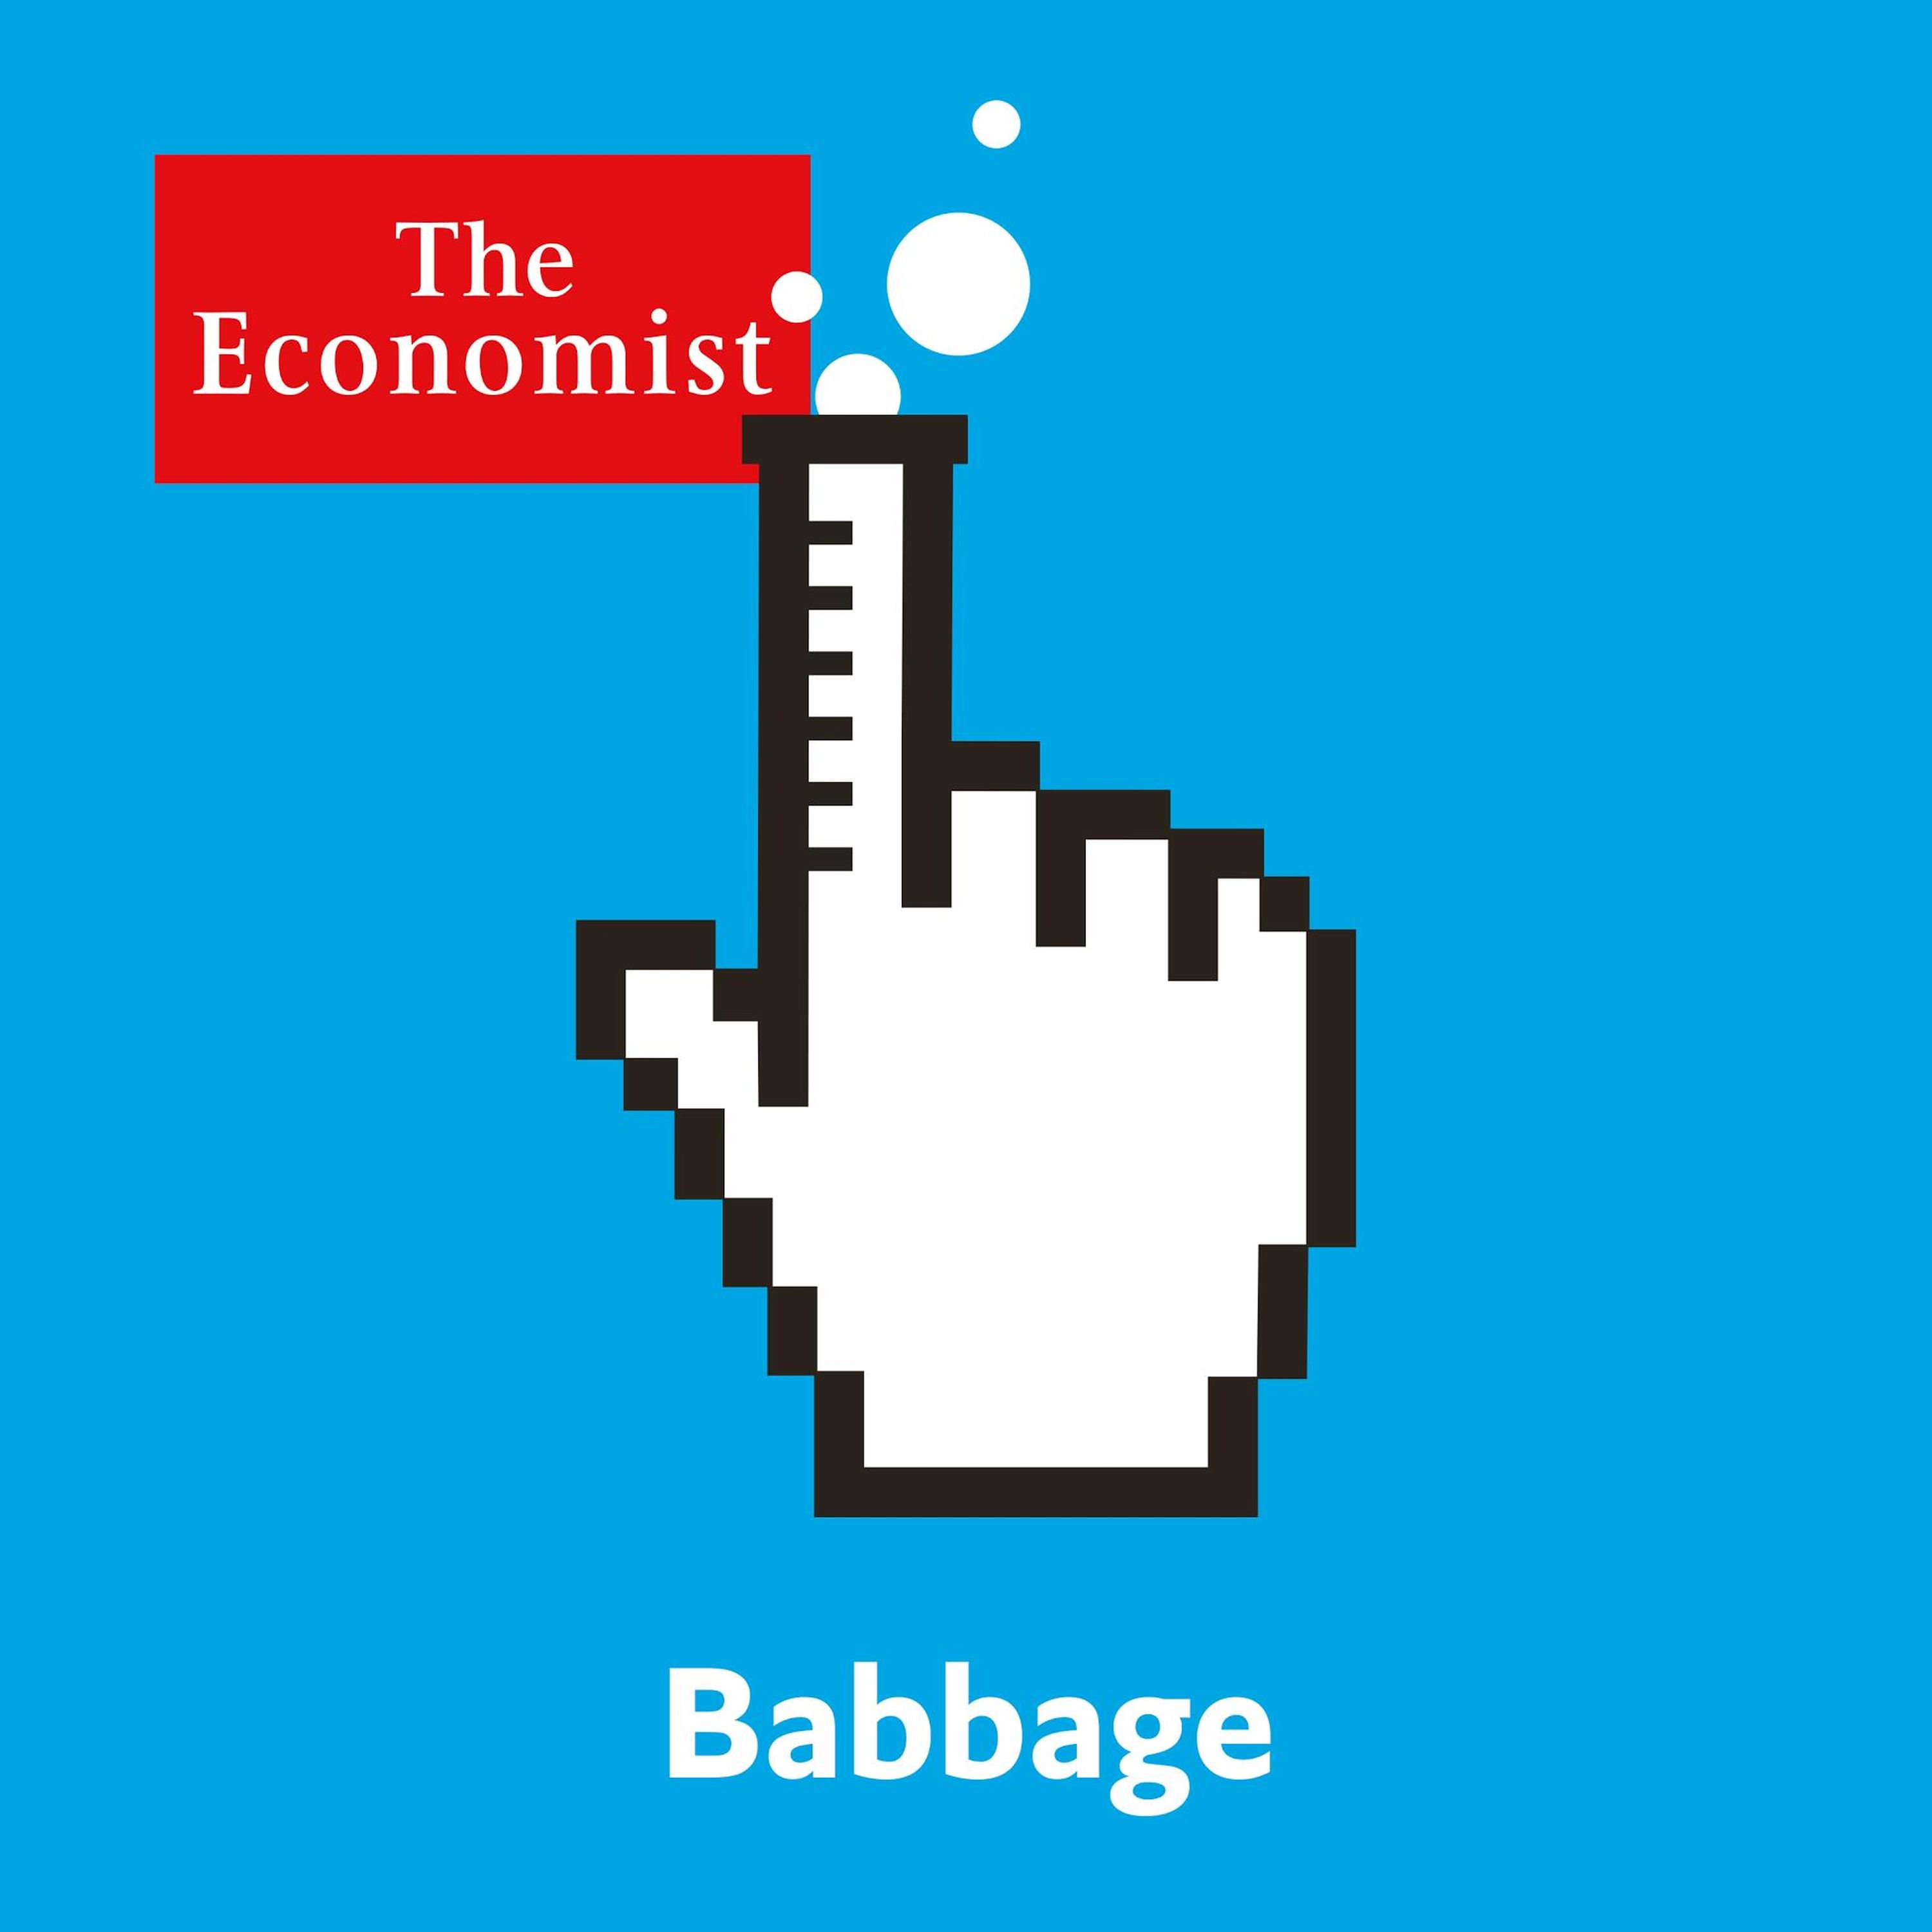 Babbage: The Metaverse is coming